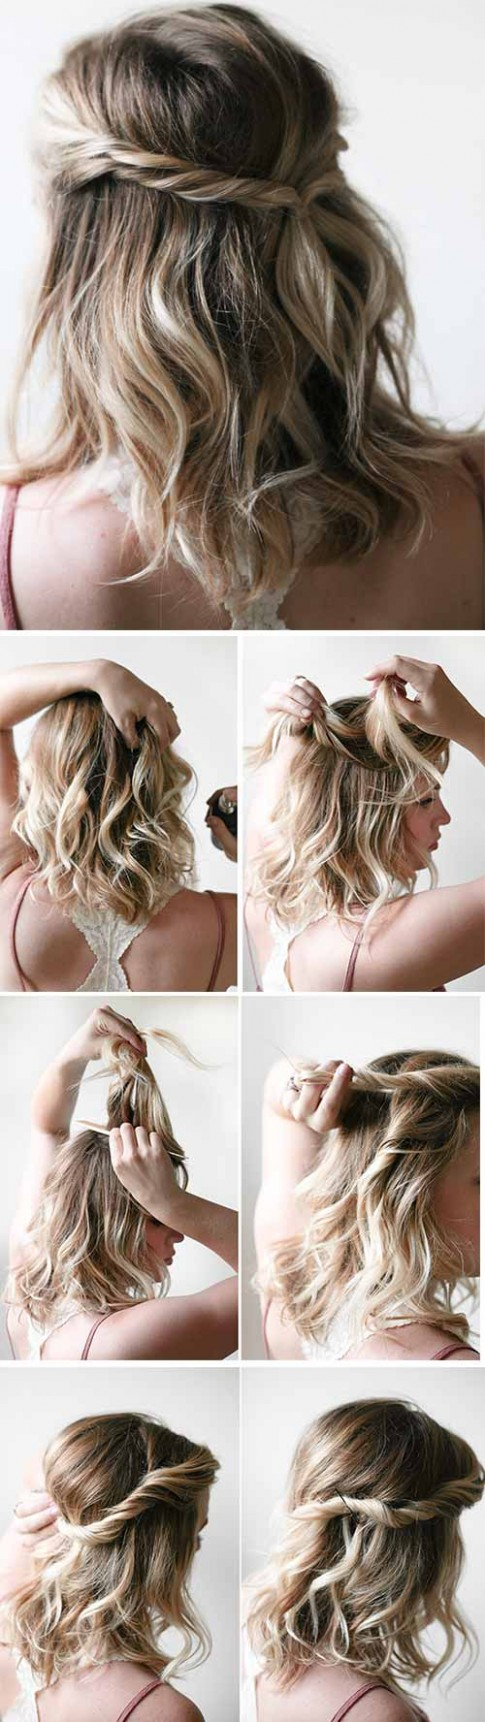 9 Incredible DIY Short Hairstyles A Step By Step Guide Cute Hairstyles For Short Hair